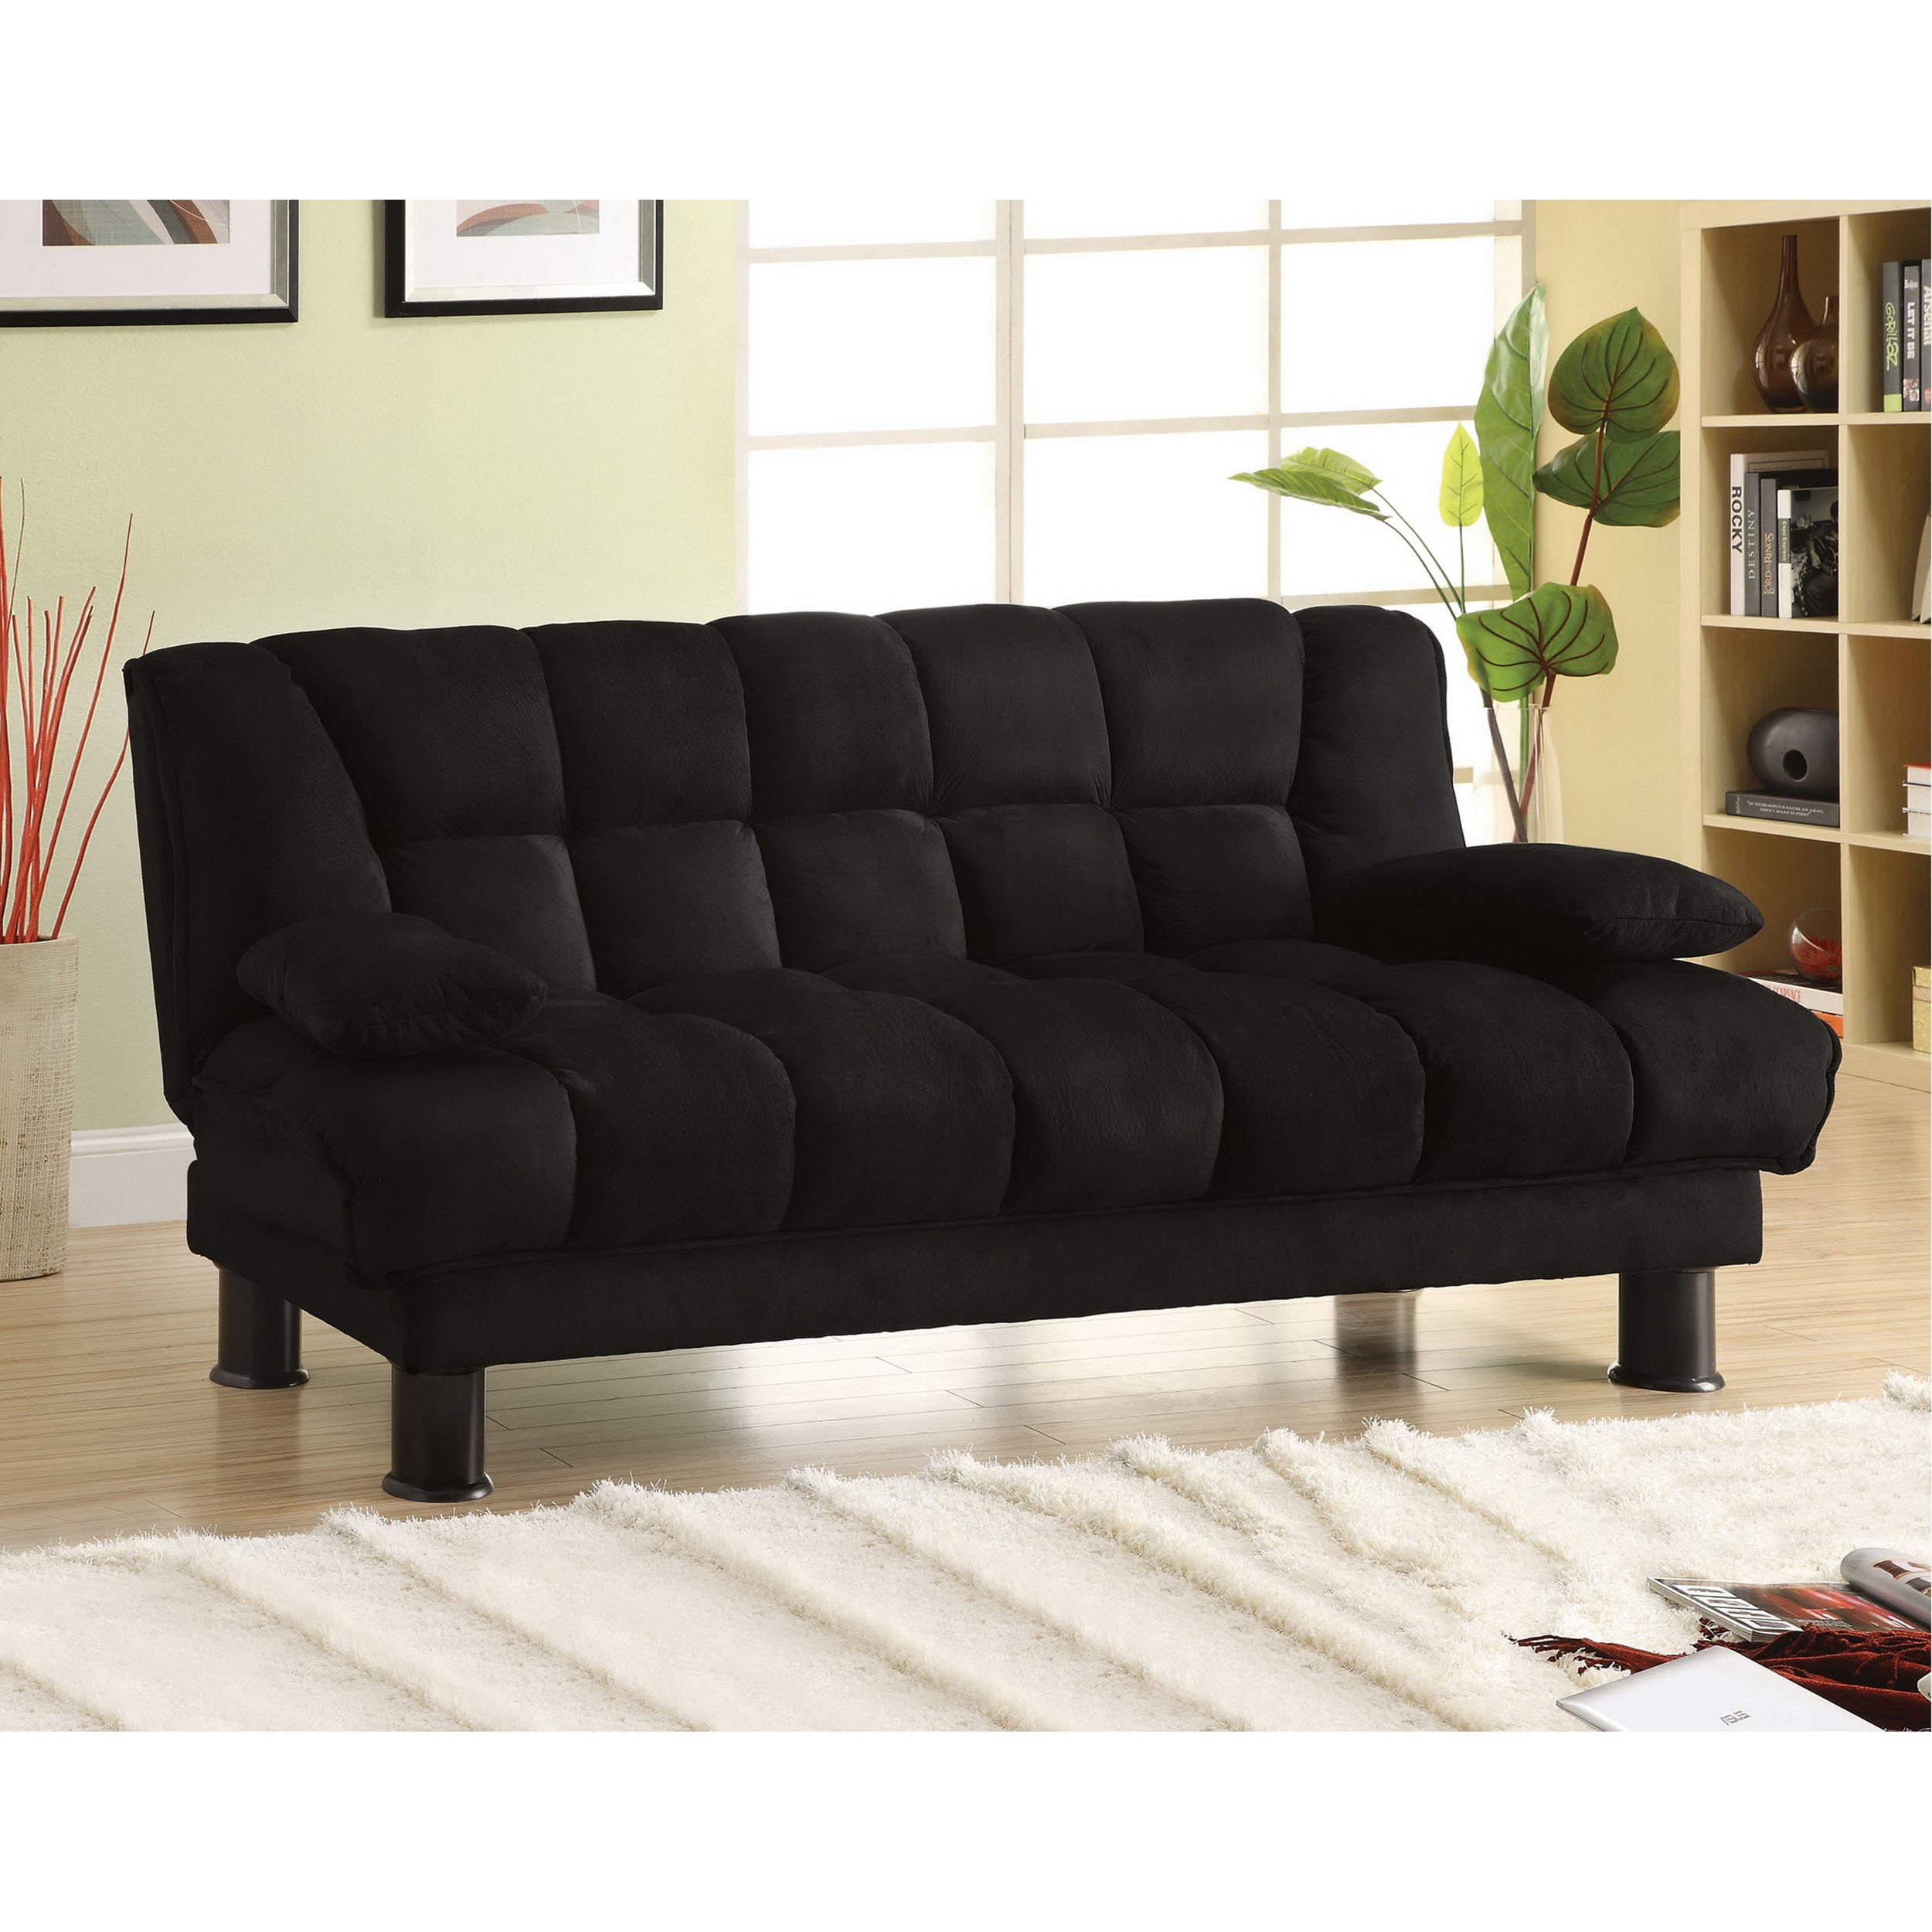 Furniture of America Black Elephant Skin Microfiber Futon Sofabed